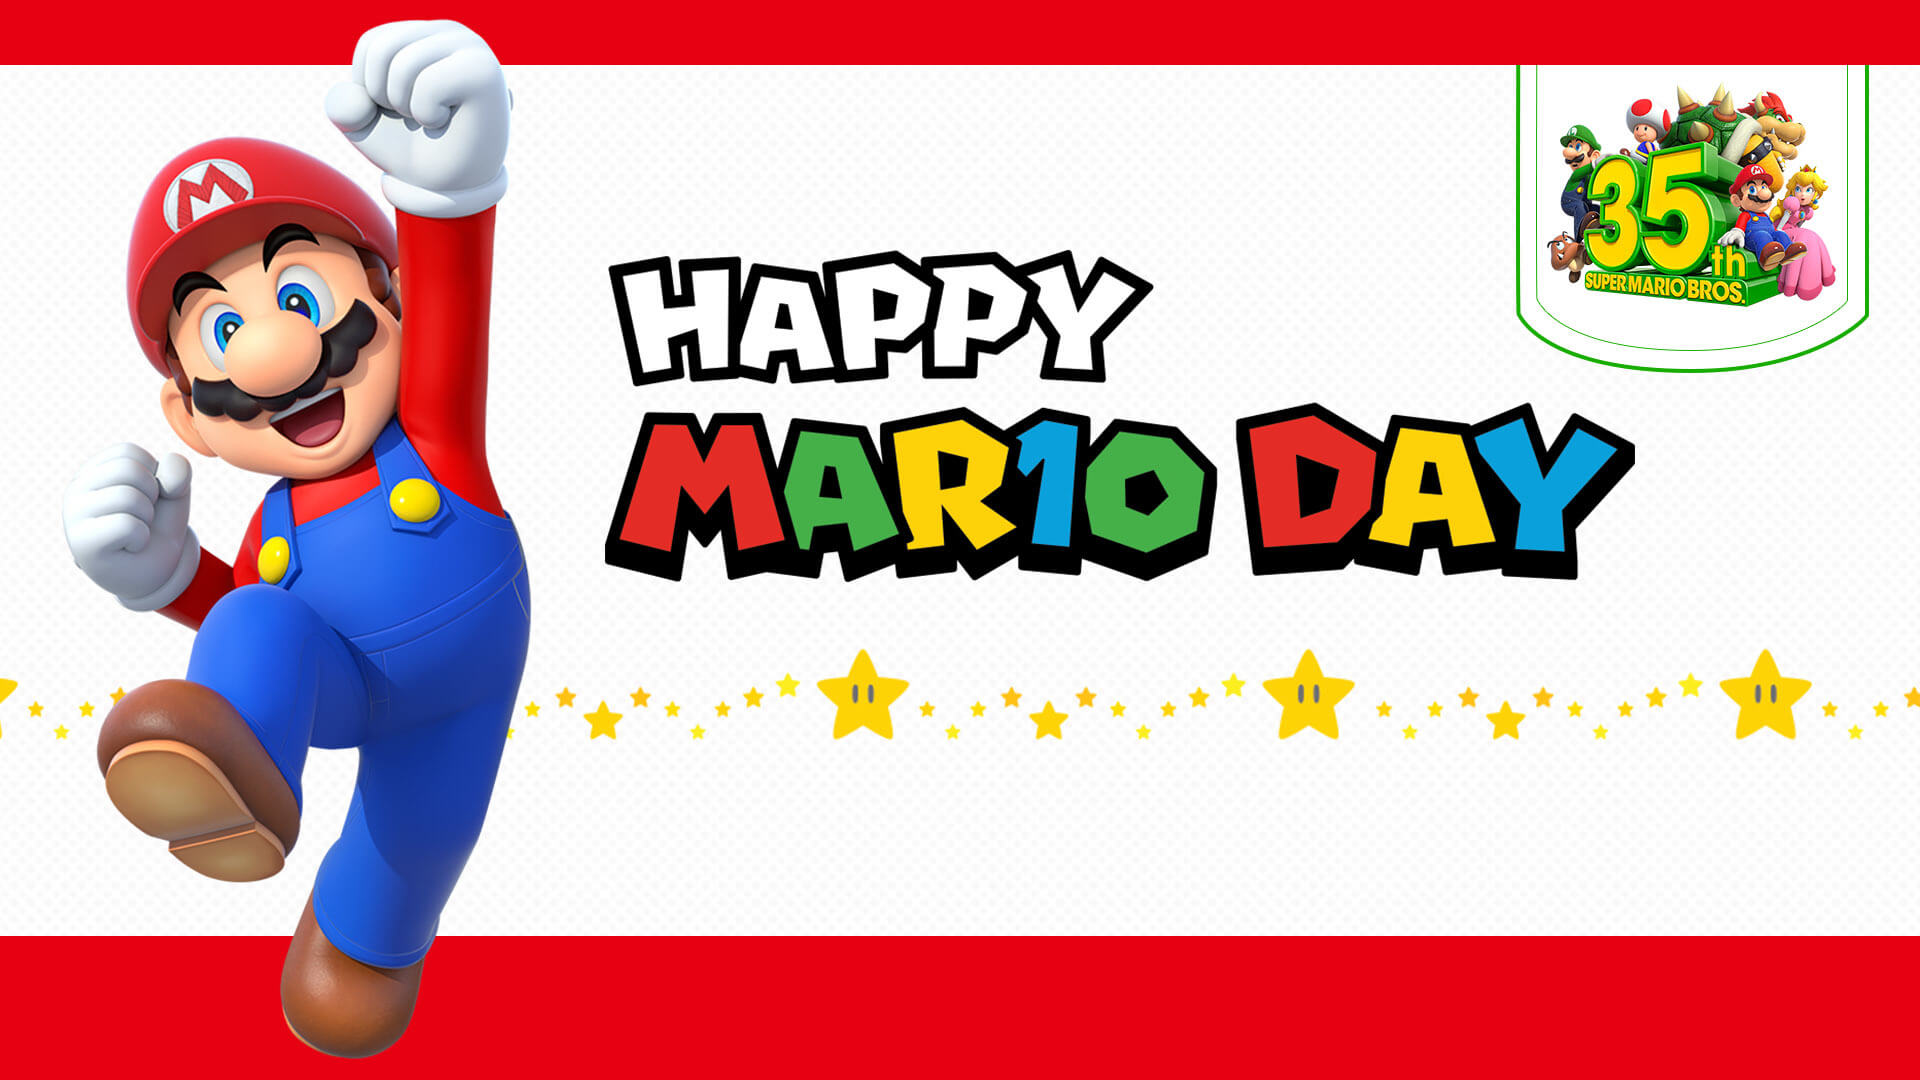 Nintendo Celebrates MAR10 Day With Sales and In-Game Events